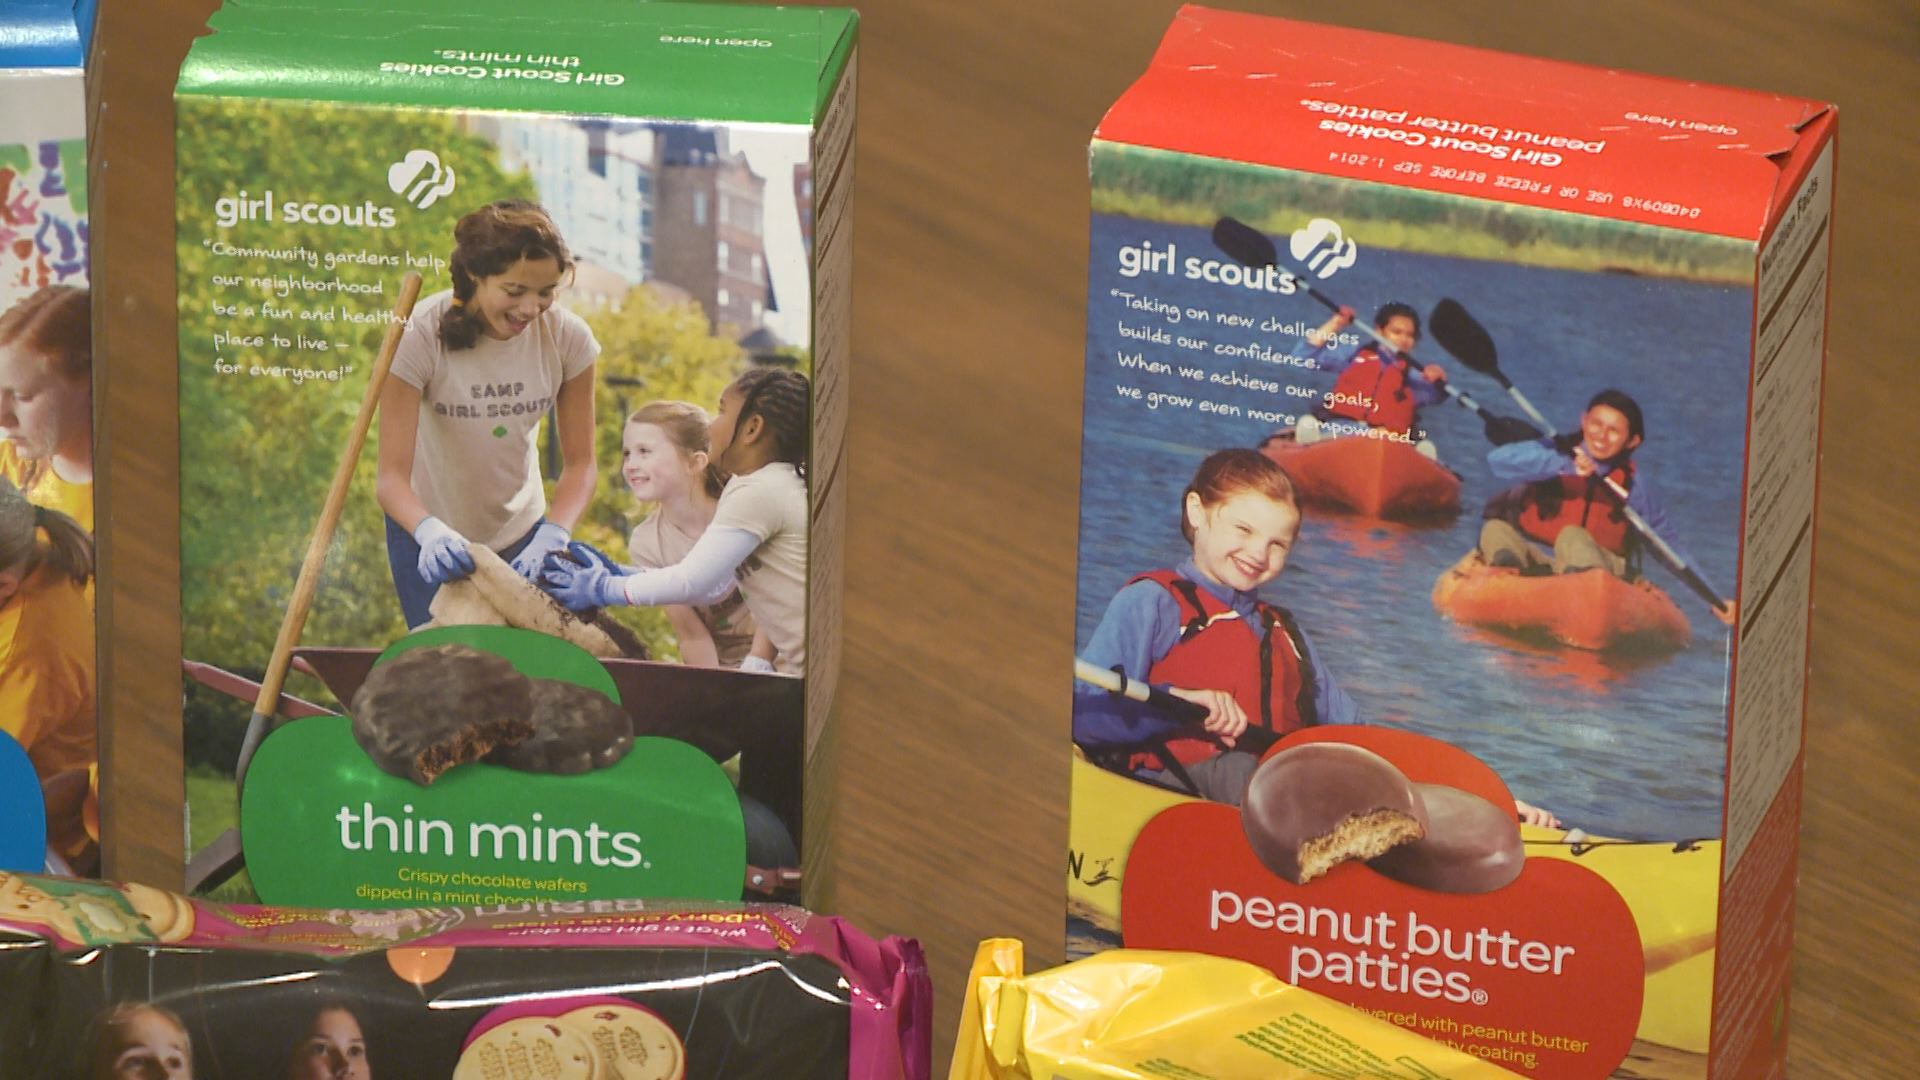 Last Day To Buy Girl Scout Cookies